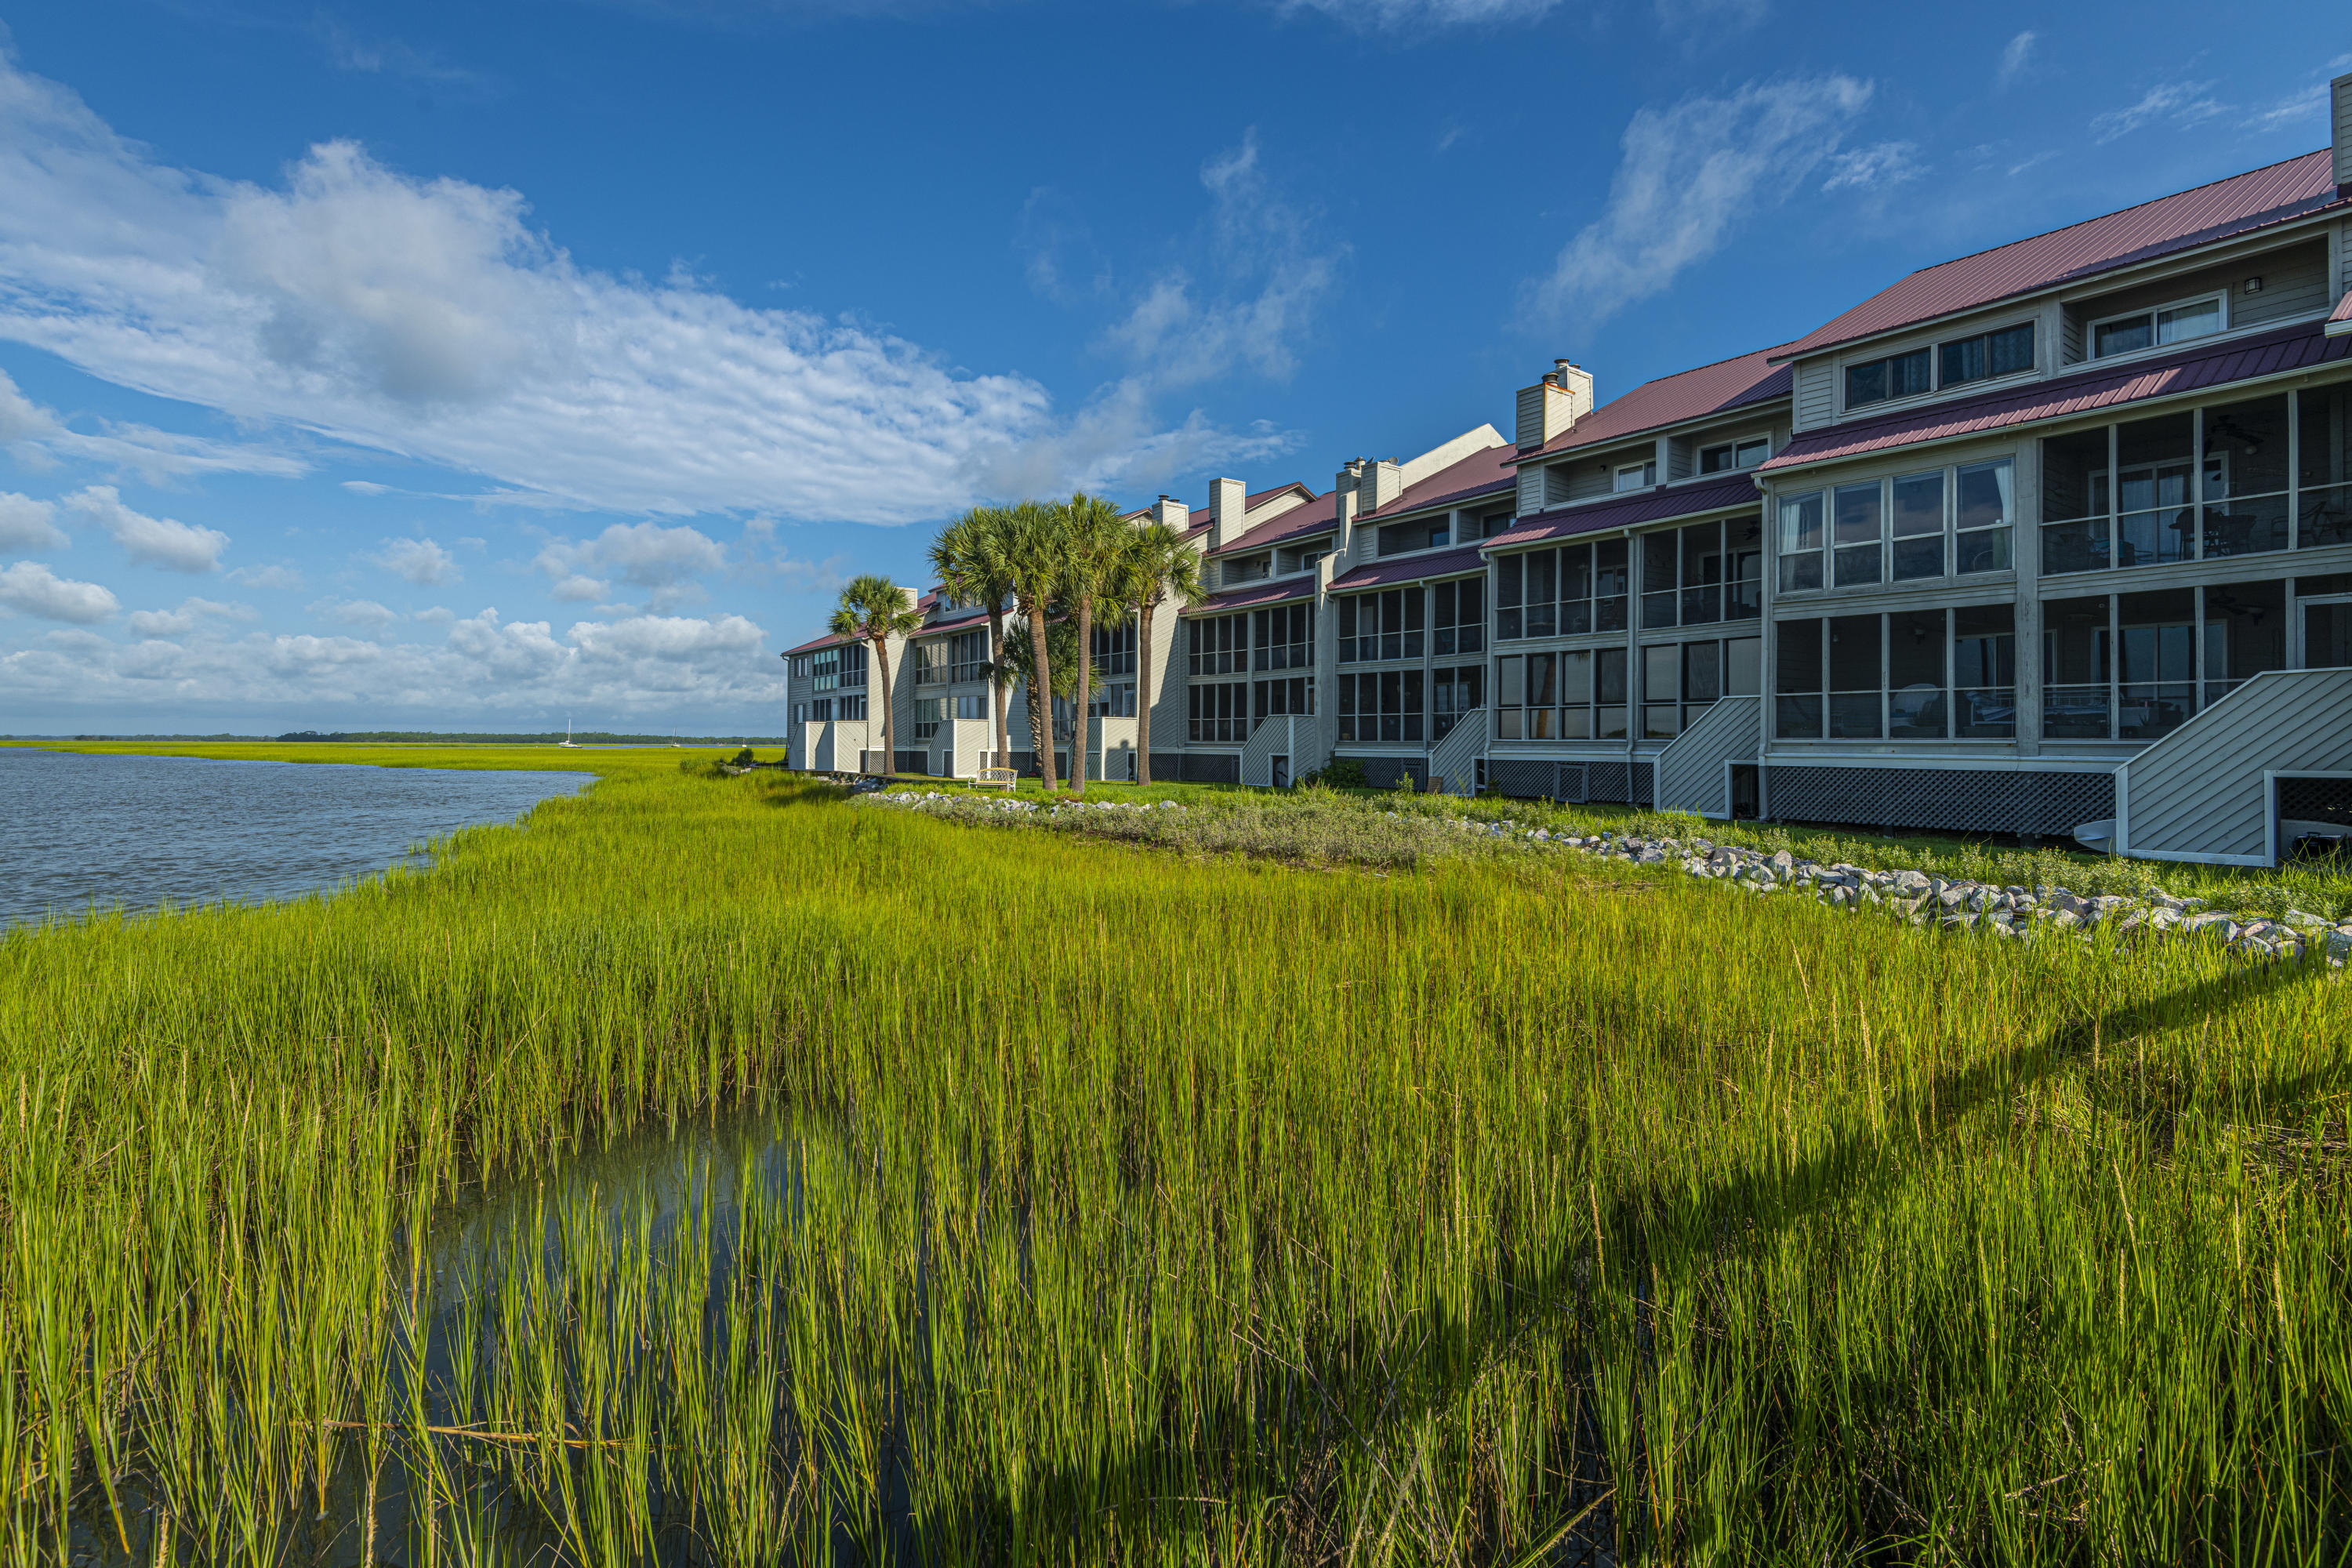 Mariners Cay Homes For Sale - 71 Mariners Cay, Folly Beach, SC - 12